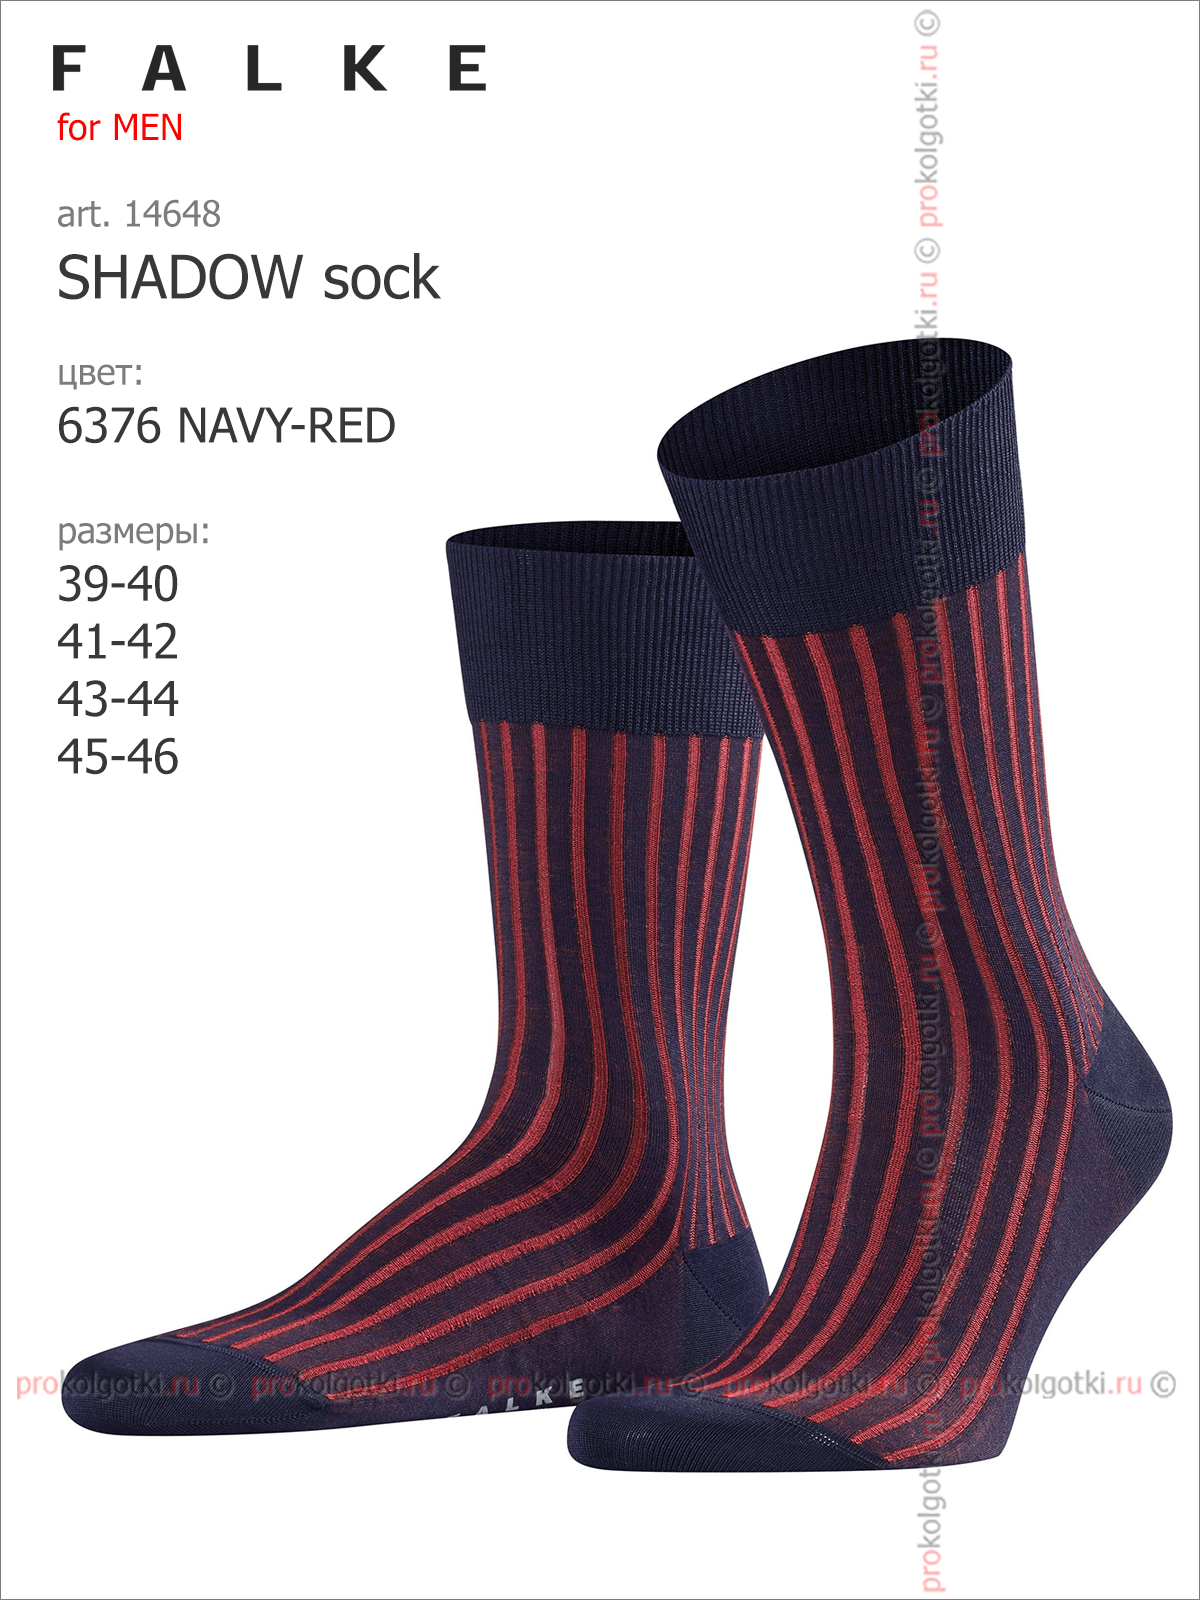 Носки Falke Art. 14648 Shadow Sock - фото 3